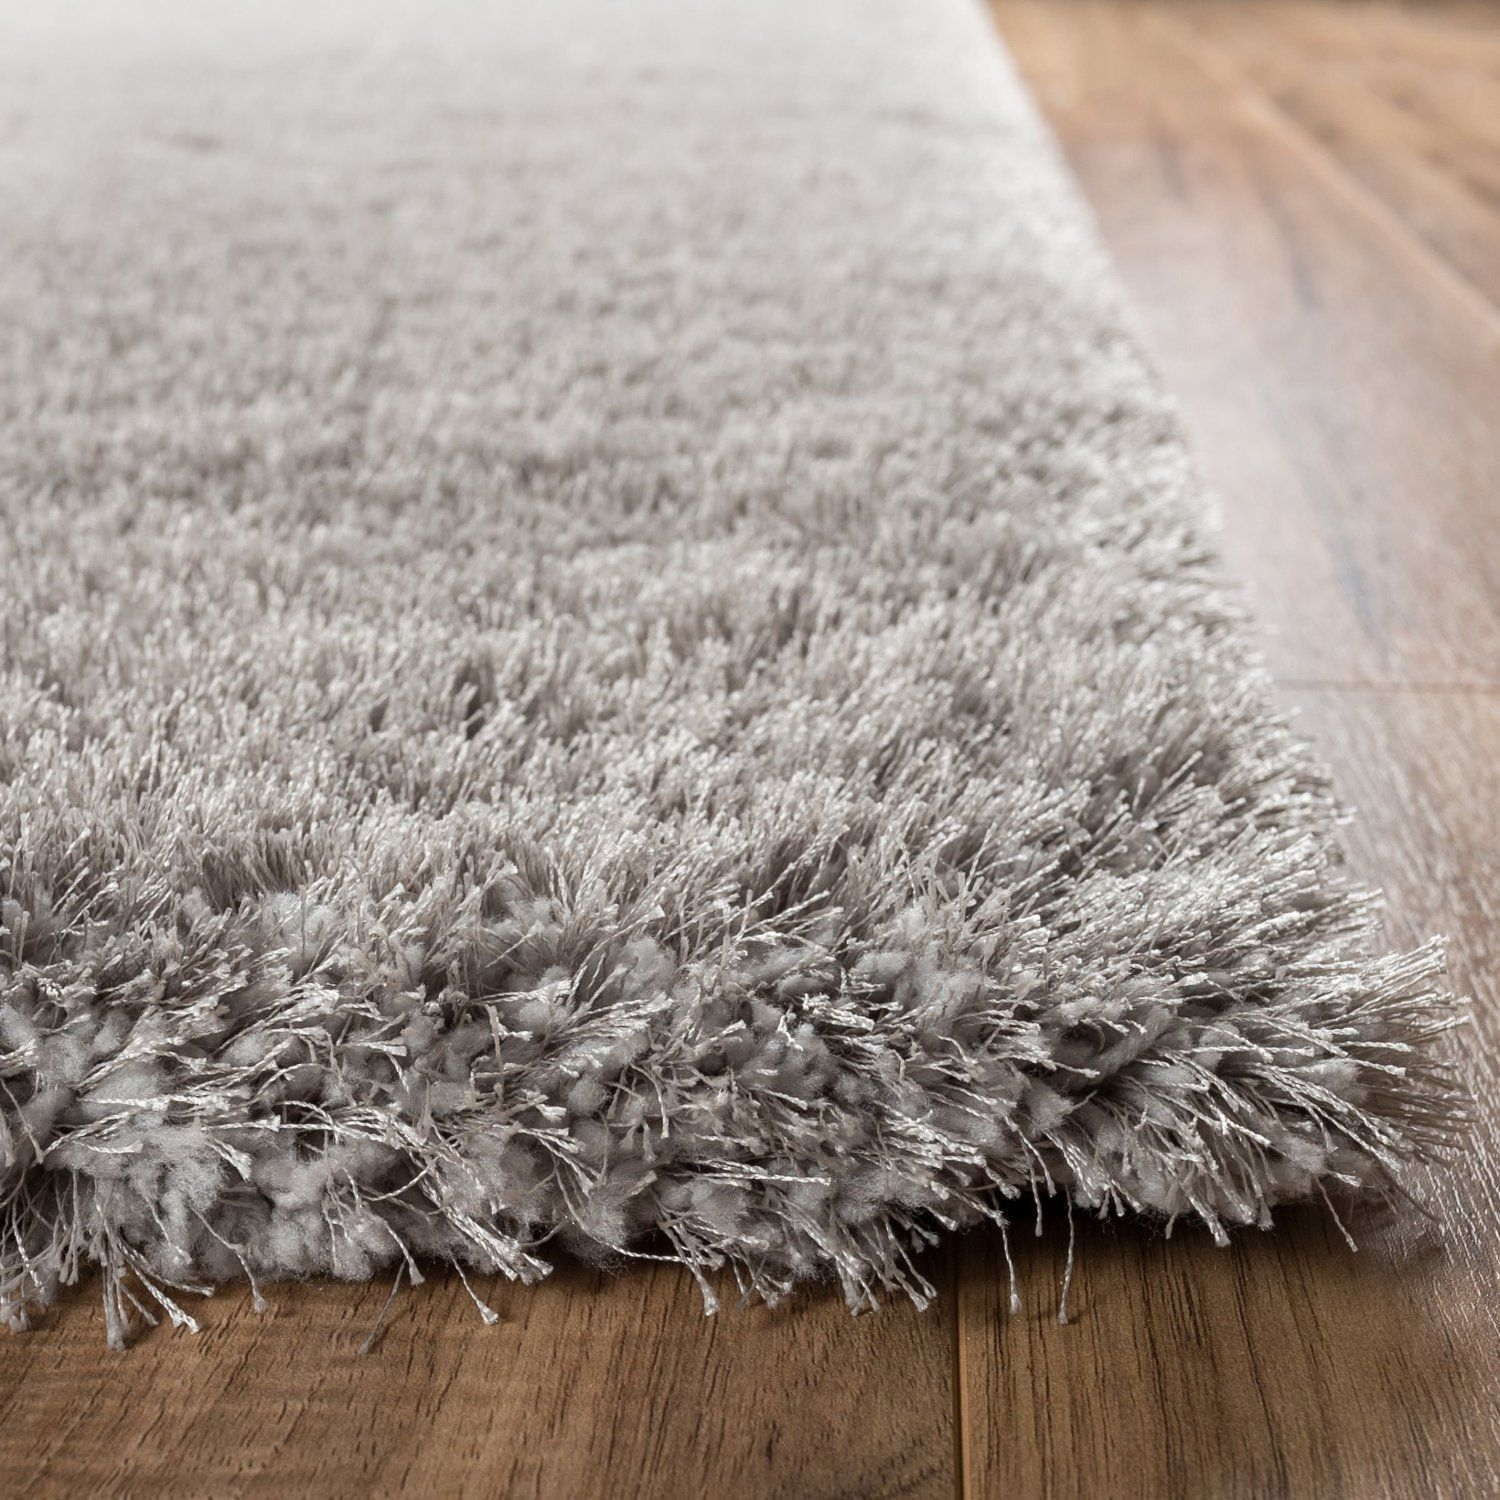 modern super rugs ontario pile mats furniture stylish quality shop soft high room plush shaggy thick area fume fashionable rug plain shag